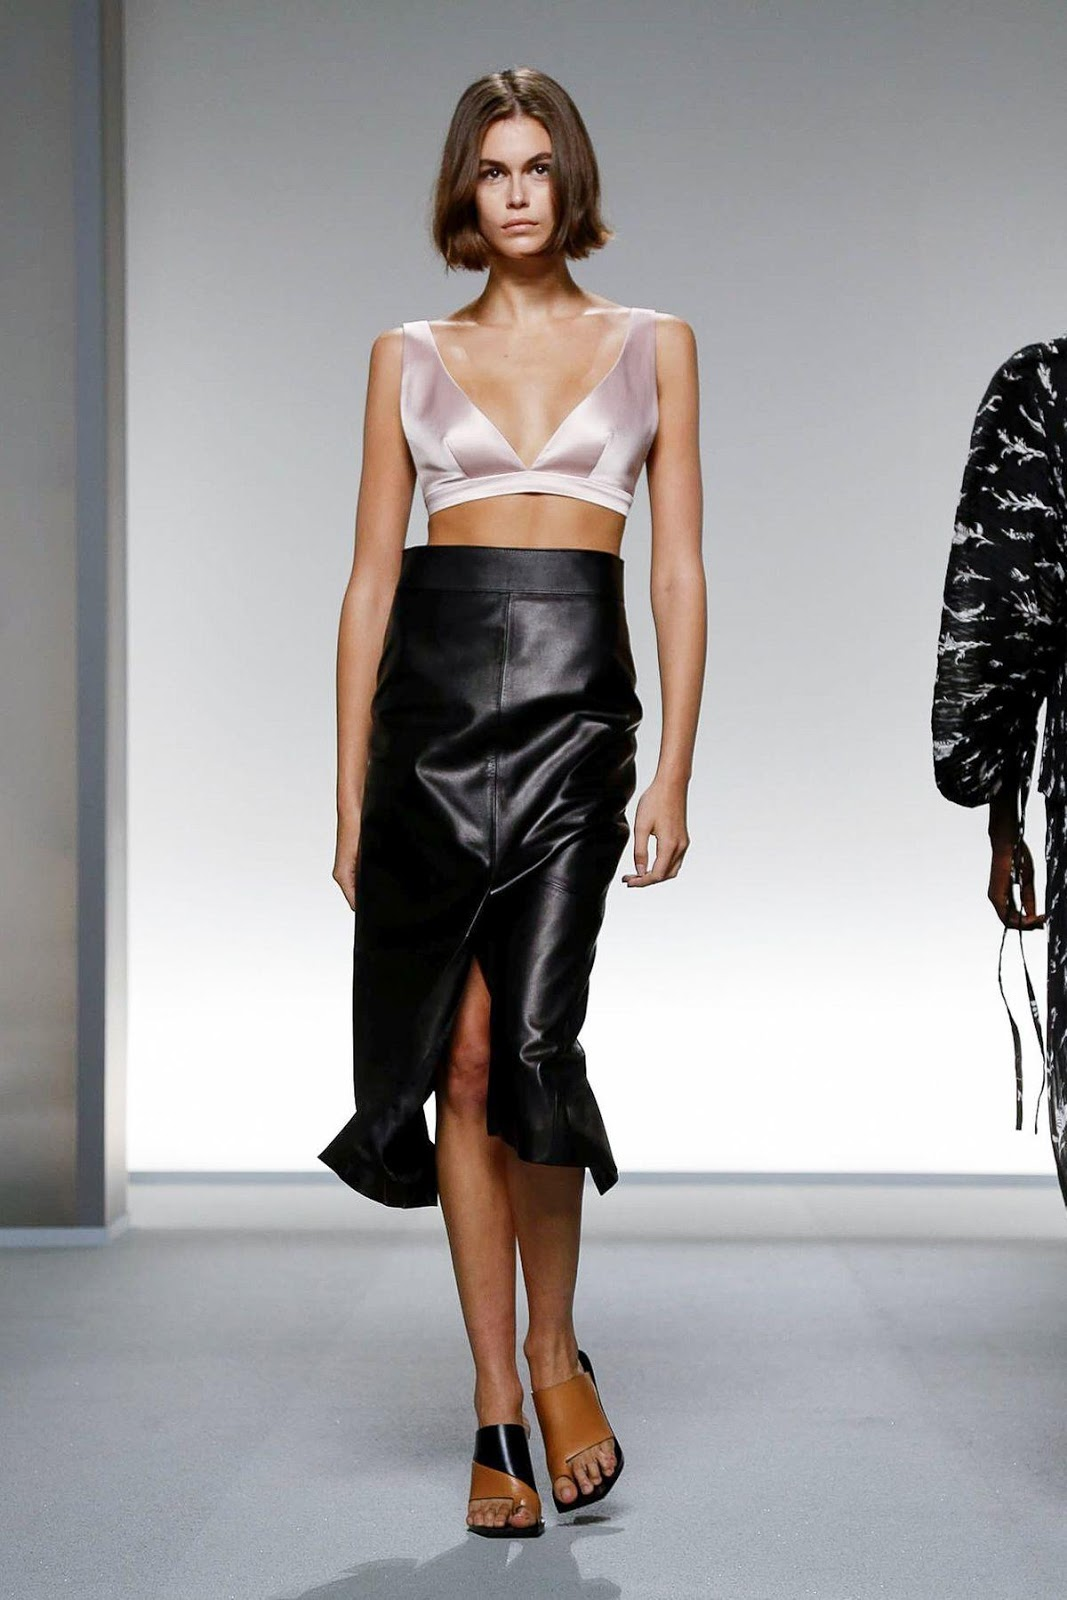 Kaia Gerber debuts her Beatles-inspired tattoo and flaunts her incredible figure in a TINY satin pink bralet as she walks for Givenchy's PFW show